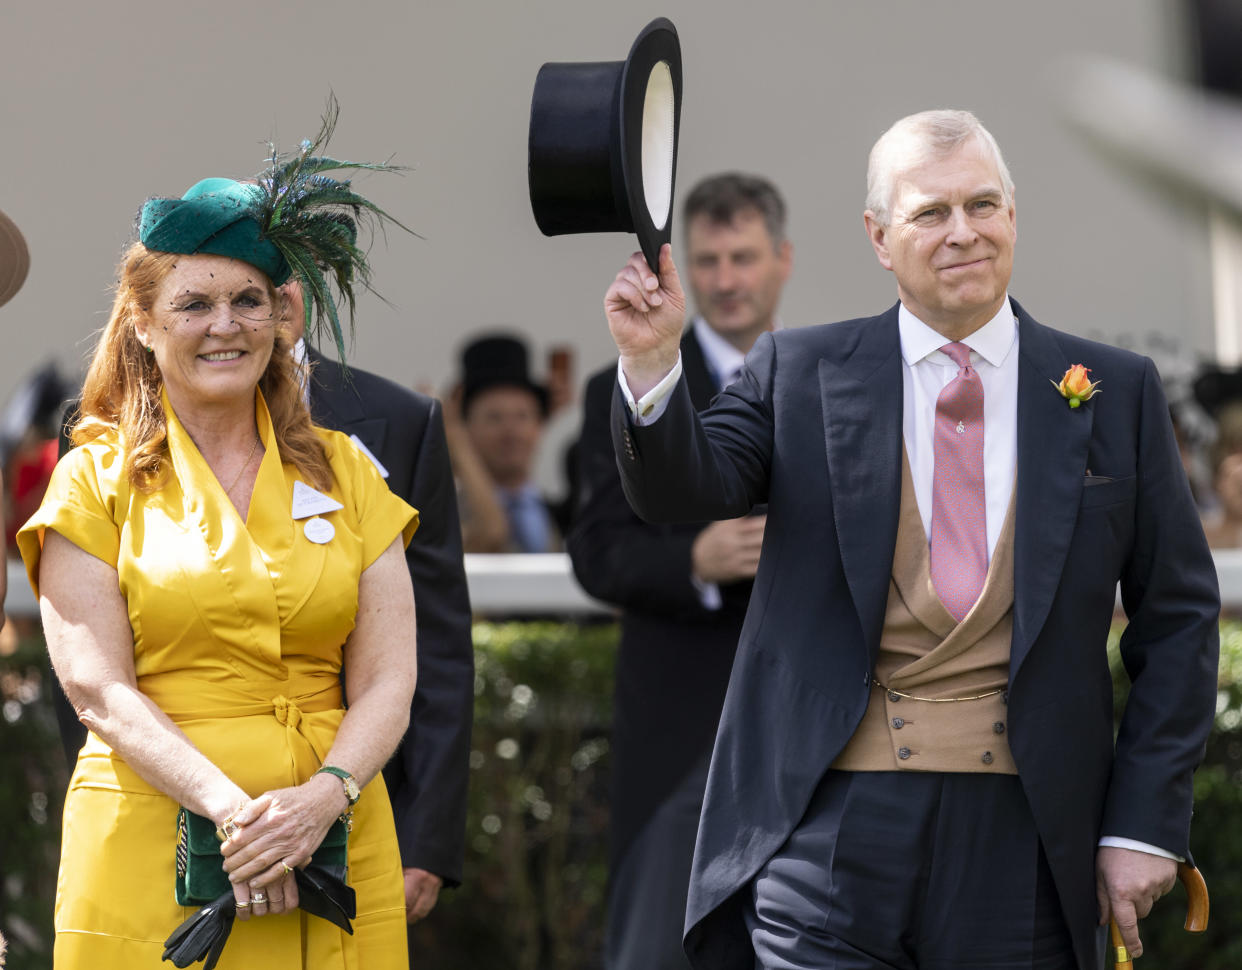 ASCOT, ENGLAND - JUNE 21: Prince Andrew, Duke of York and Sarah Ferguson, Duchess of York on day four of Royal Ascot at Ascot Racecourse on June 21, 2019 in Ascot, England. (Photo by Mark Cuthbert/UK Press via Getty Images)